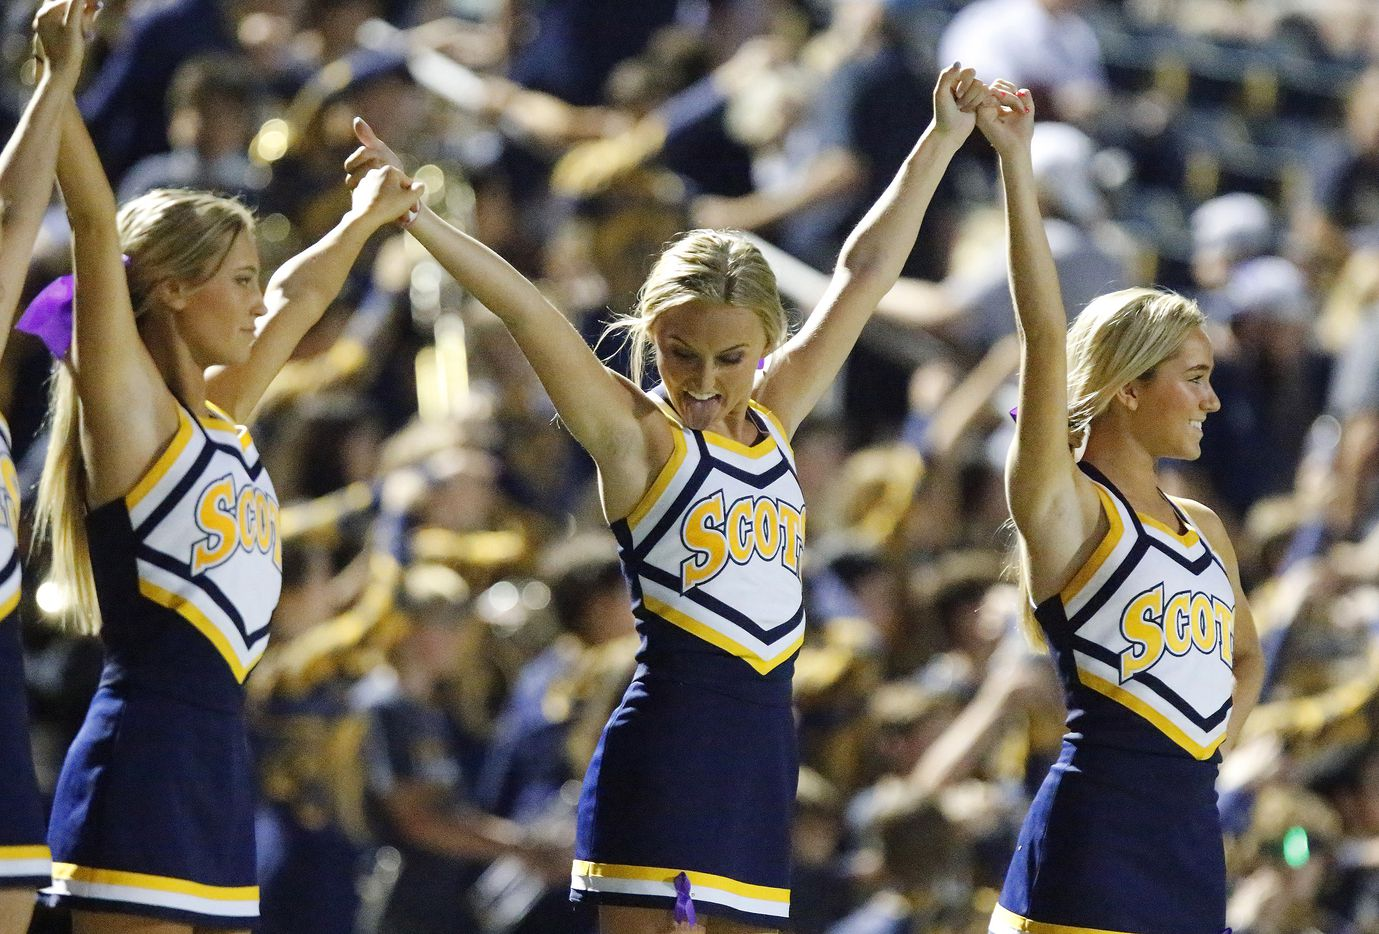 Highland Park cheerleaders Lucy Needleman (center), 17, gets ready for kickoff  as Highland Park High School hosted Longview High School at Highlander Stadium in Dallas on Friday night, October 8, 2021. (Stewart F. House/Special Contributor)